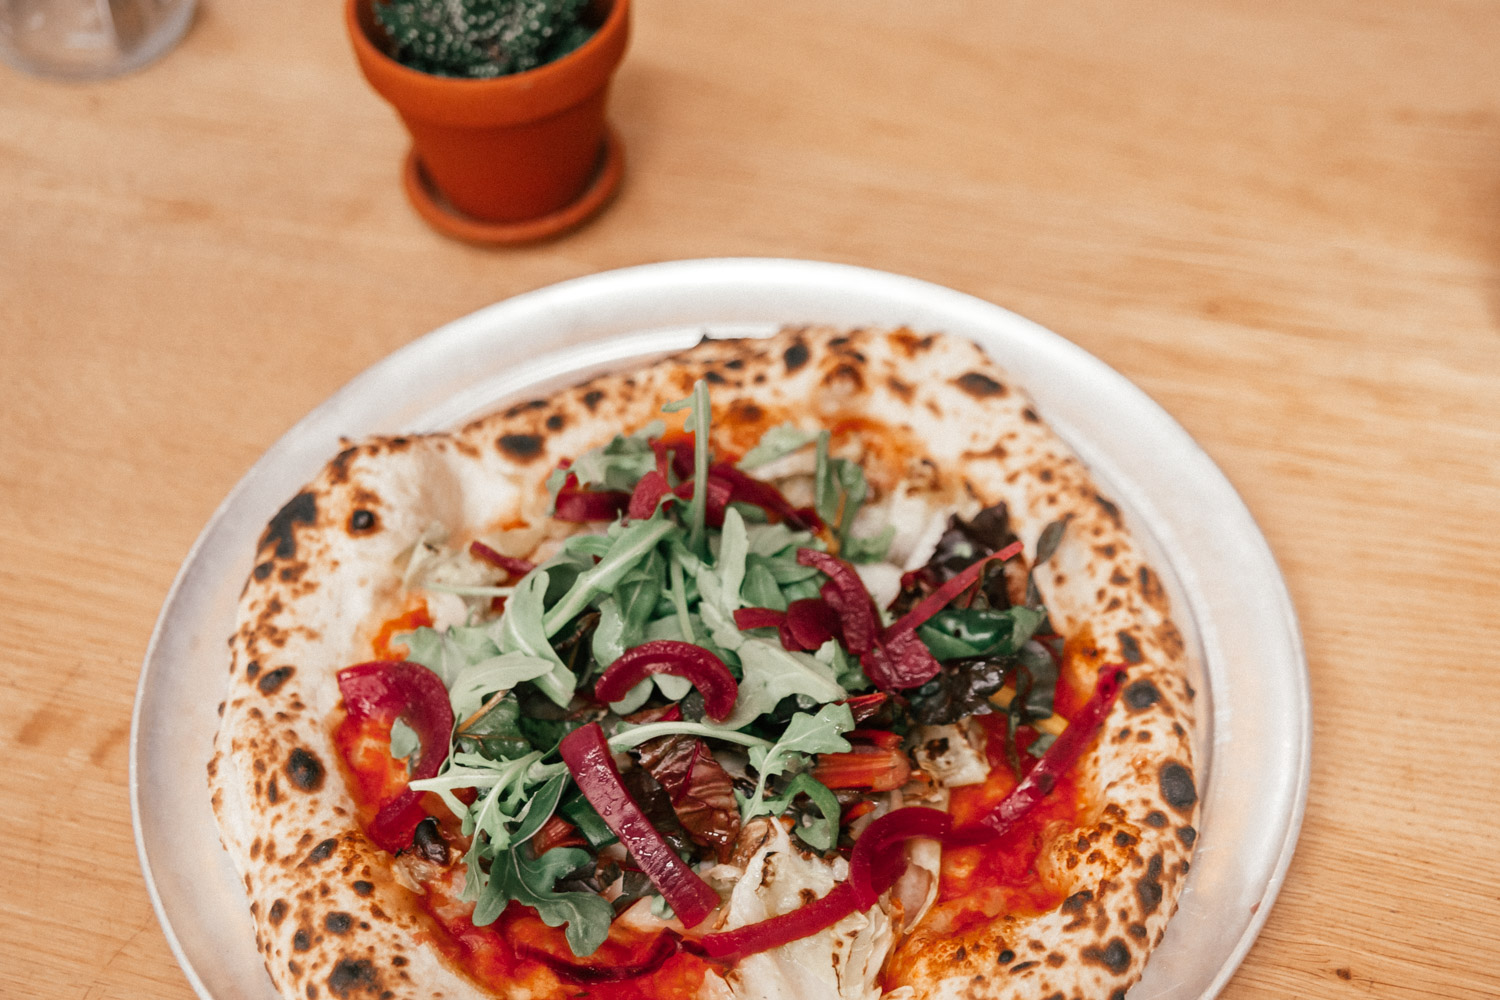 Vegan sourdough pizza at Standard PAKT, Antwerp